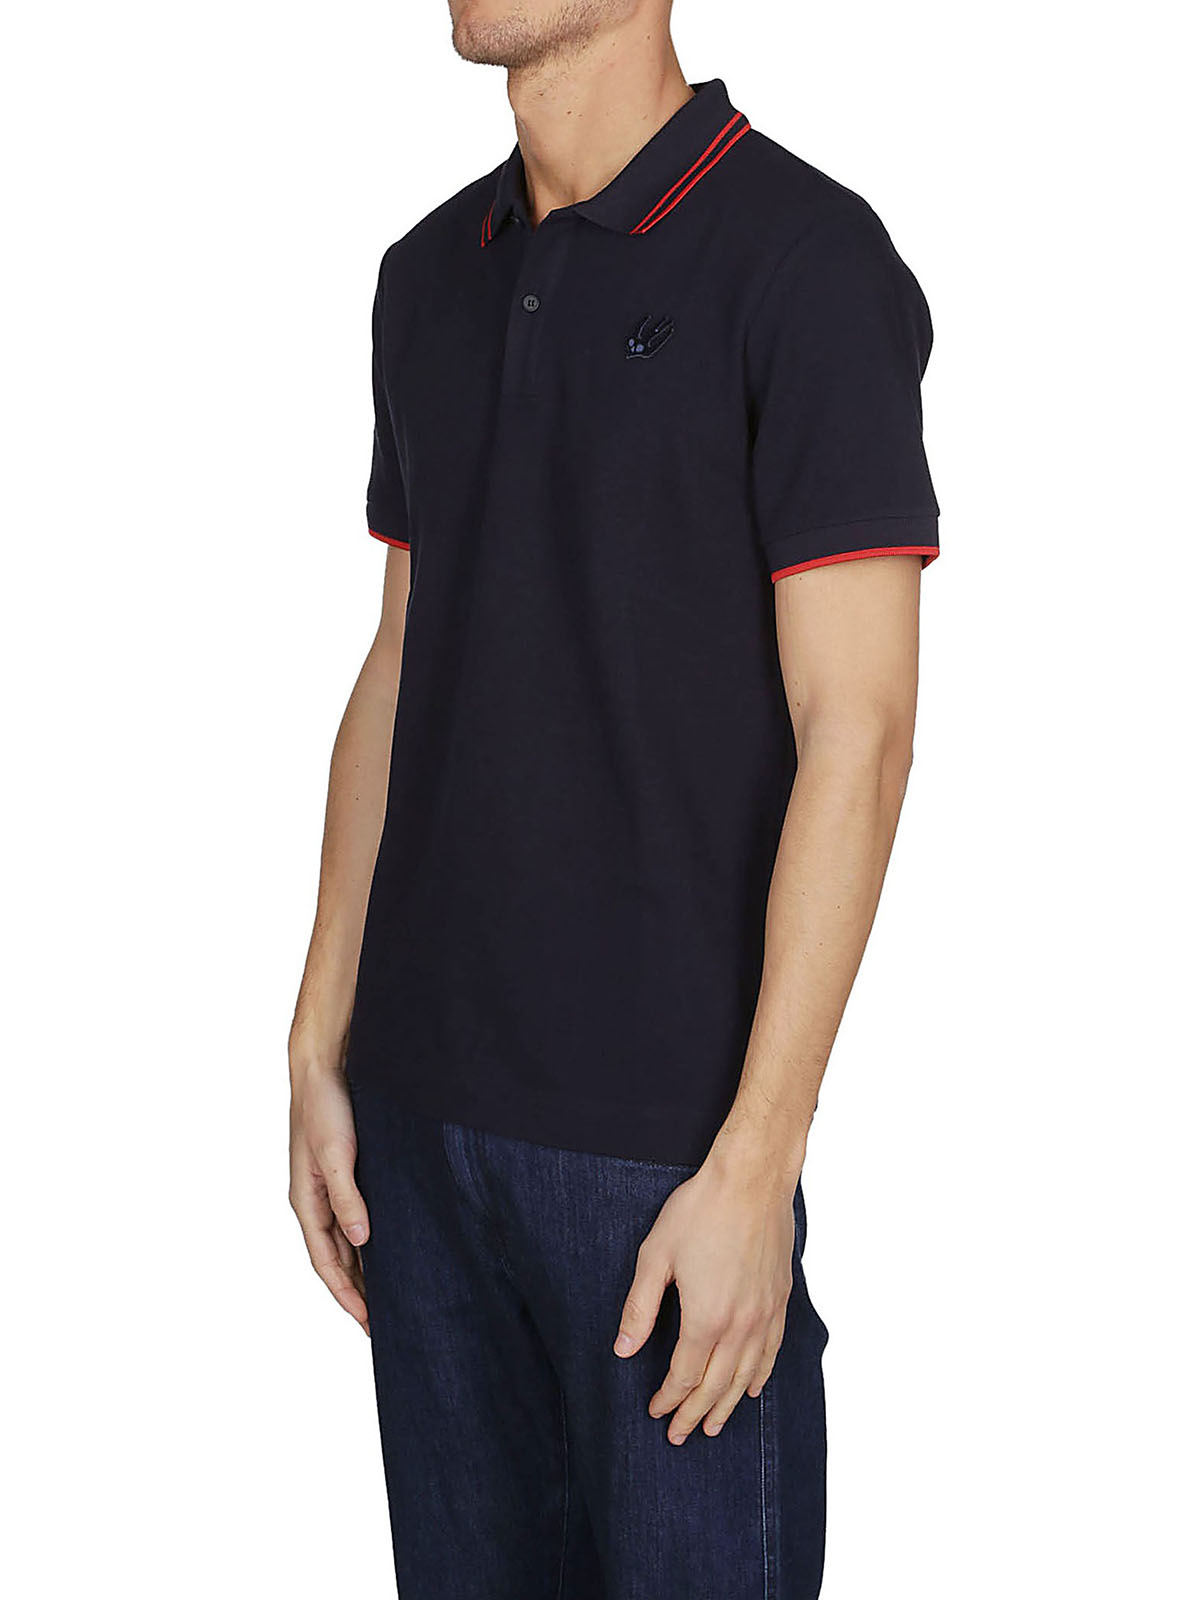 Mcq Swallow Embroidered Navy Blue Polo Shirt Polo Shirts